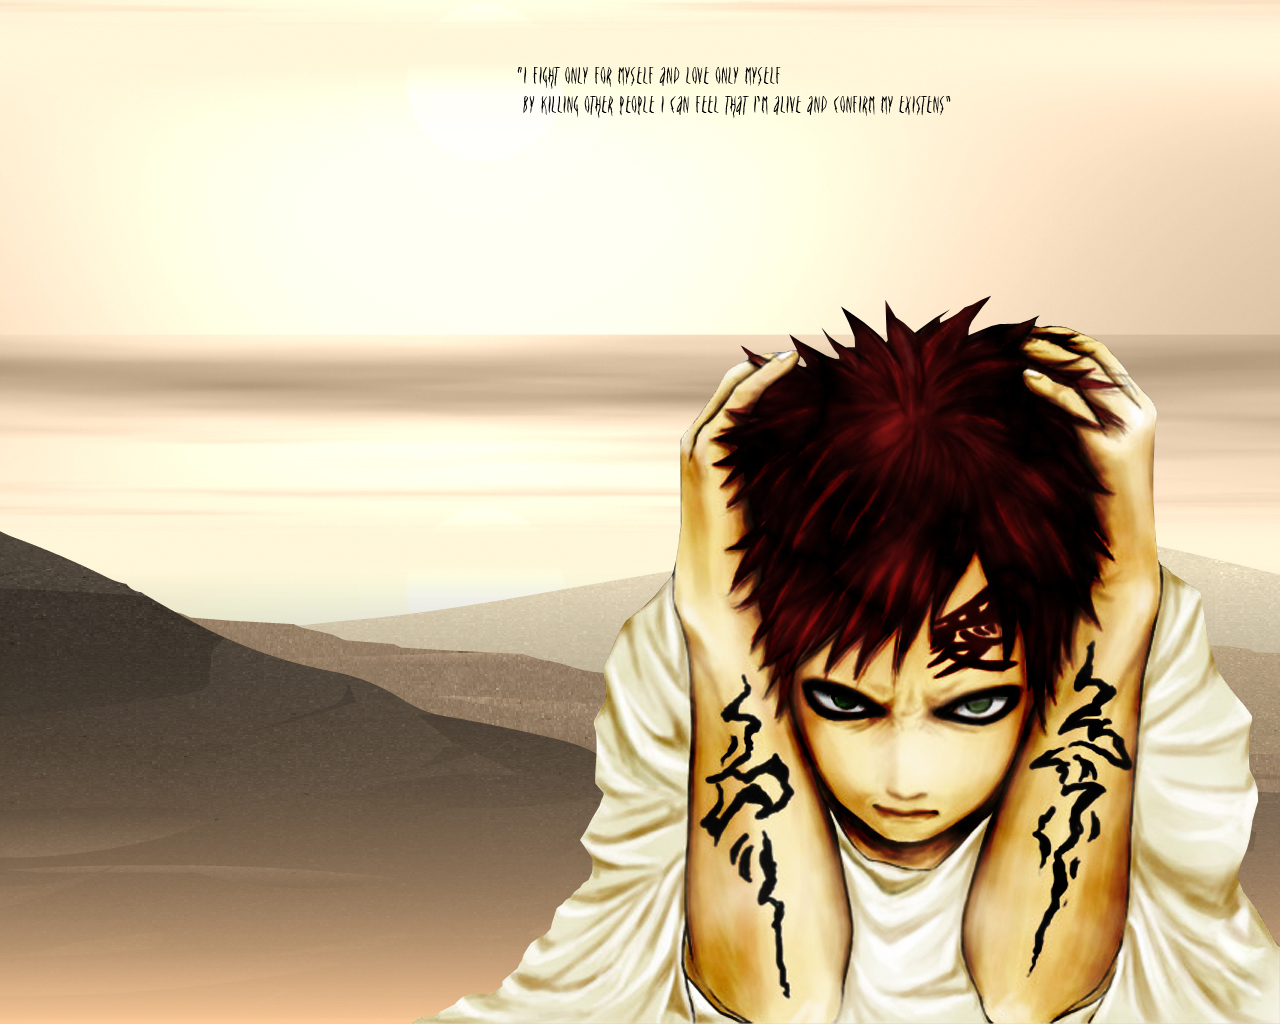 naruto and gaara wallpaper - photo #41